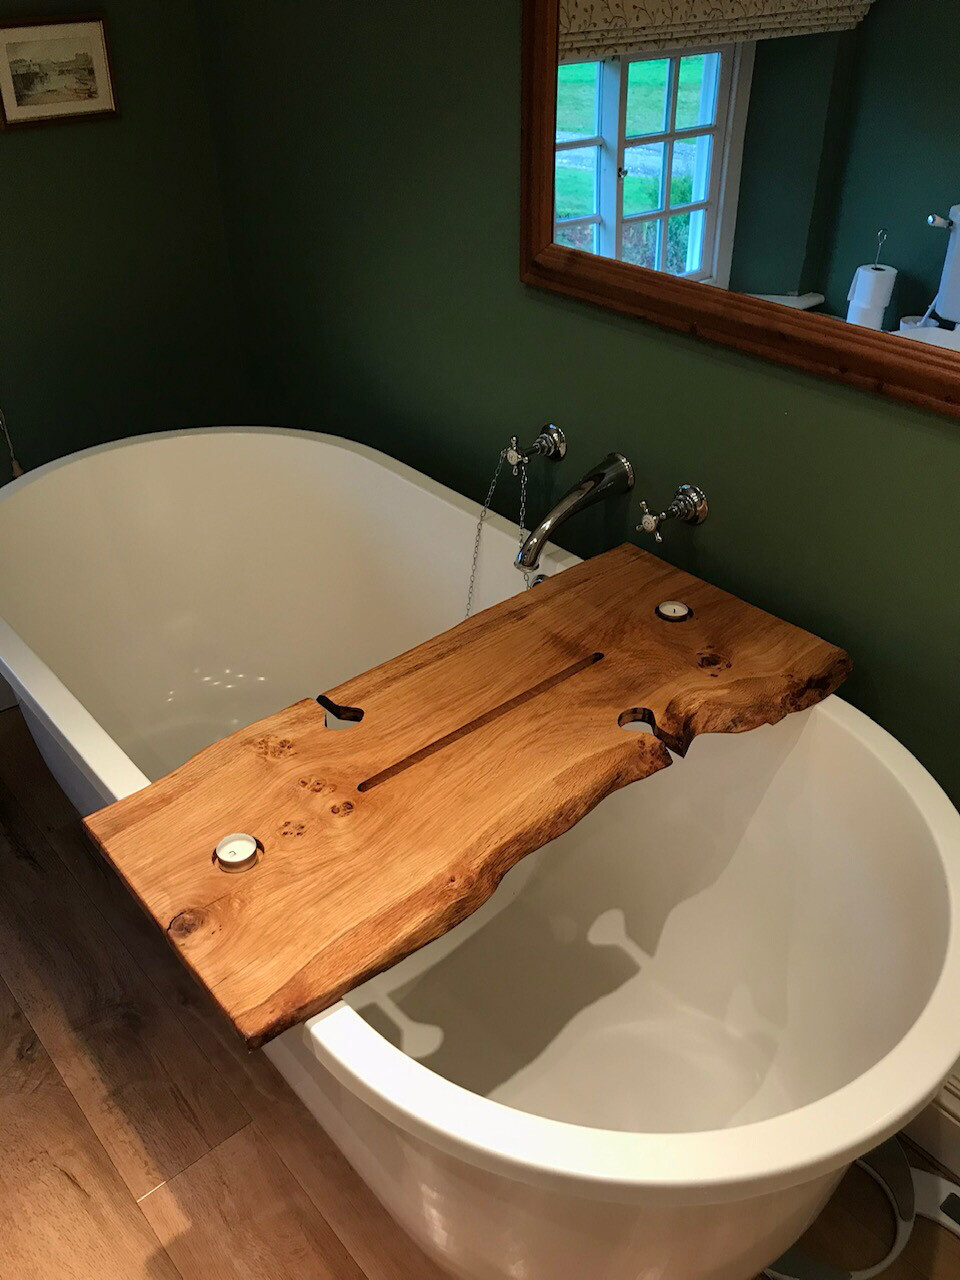 Double Live Edge Solid Pippy Oak wood Bespoke Rustic Bath Caddy Tray Tablet Holder